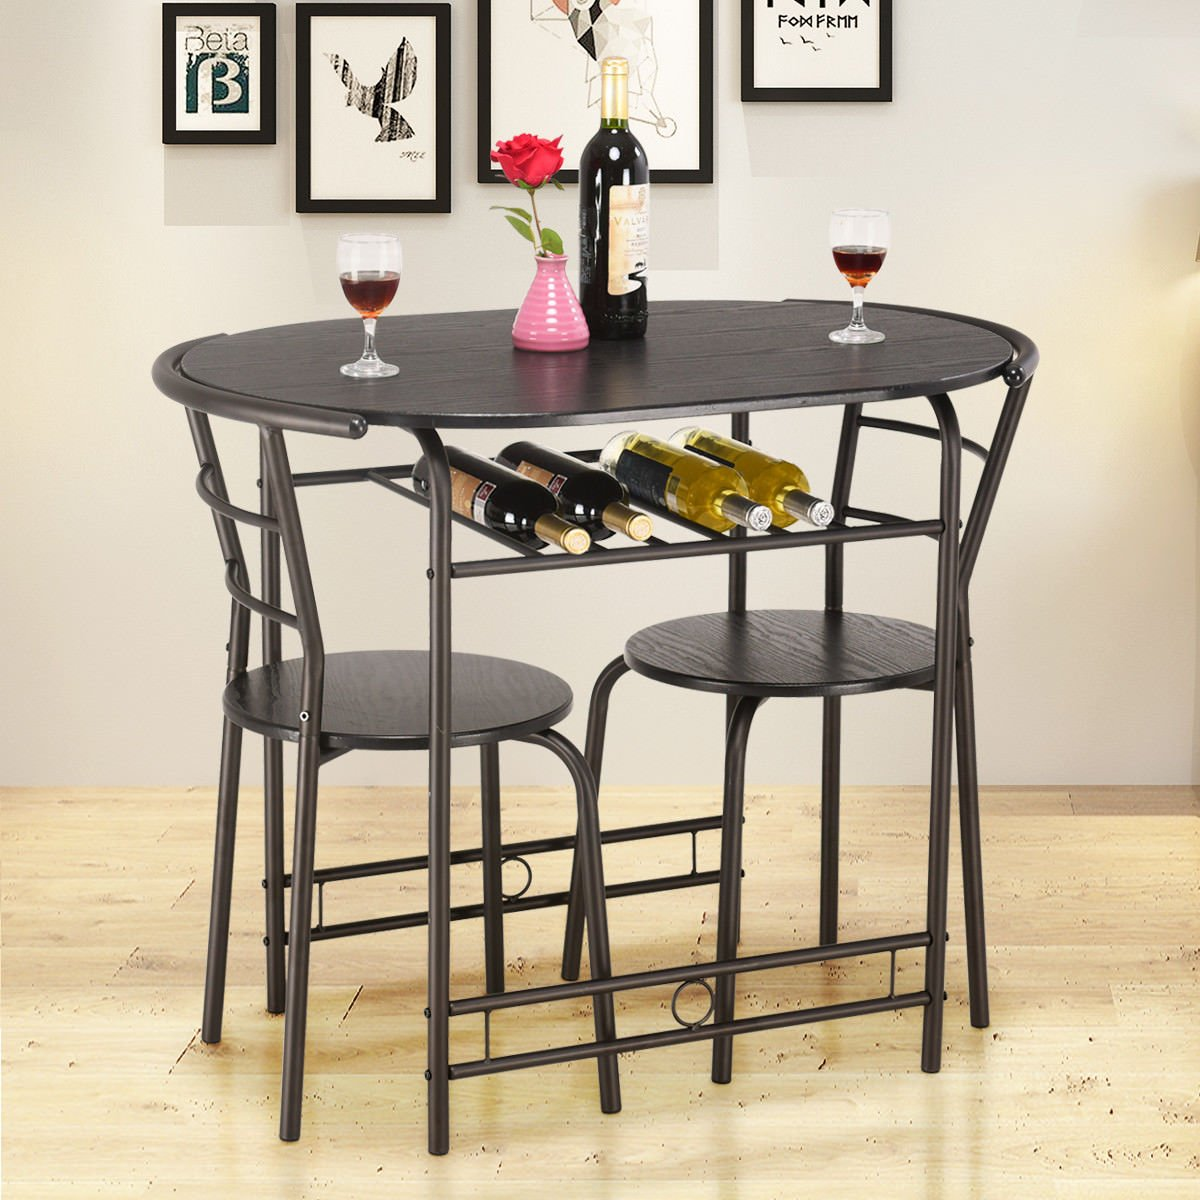 Giantex 3 PCS Dining Table Set w/1 Table and 2 Chairs Home Restaurant Breakfast Bistro Pub Kitchen Dining Room Furniture (Black) by Giantex (Image #2)